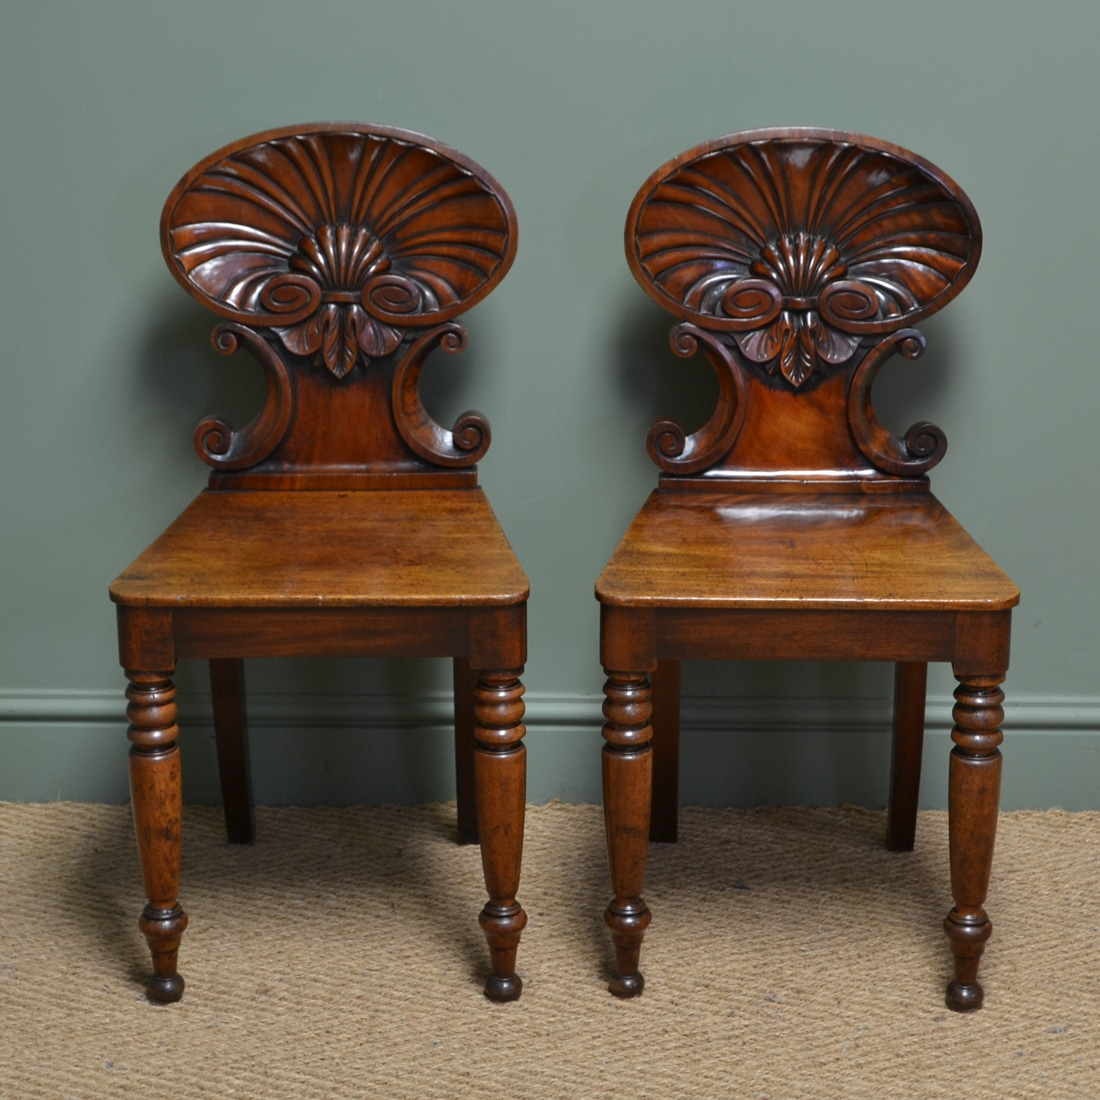 Spectacular Gillows Design Early Victorian Shell Carved Pair of Antique  Mahogany Hall Chairs - Antique Hall Chairs - Antiques World